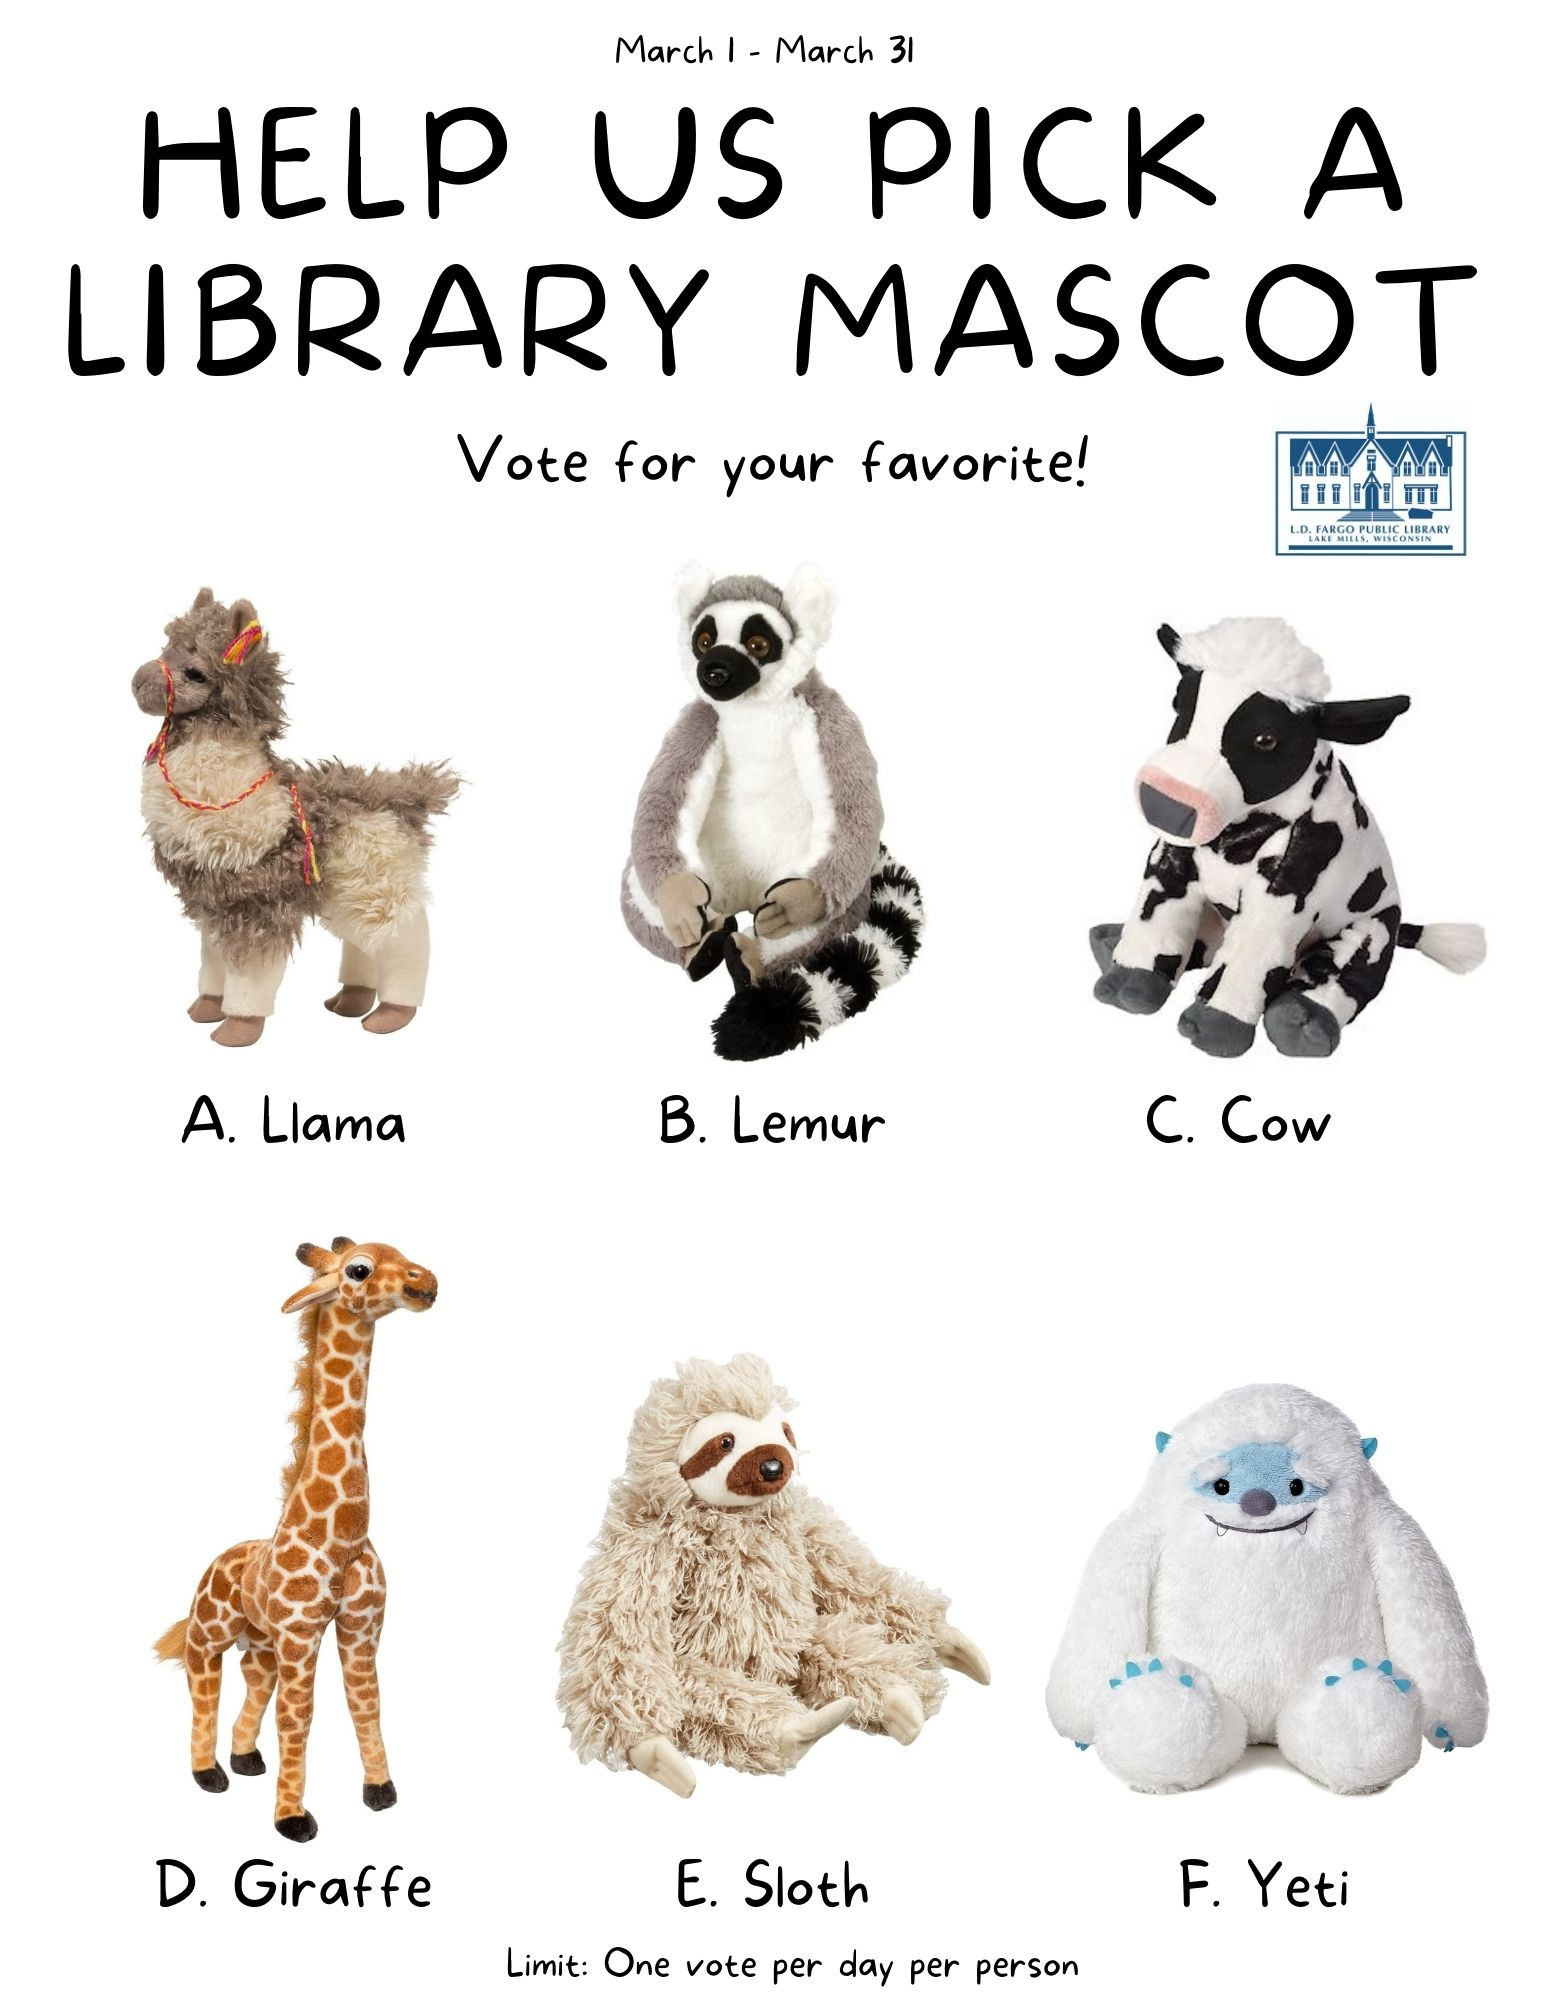 Vote for the Library Mascot.  Vote at the library pick-up window or online here  One vote per person per day.  March 1-3